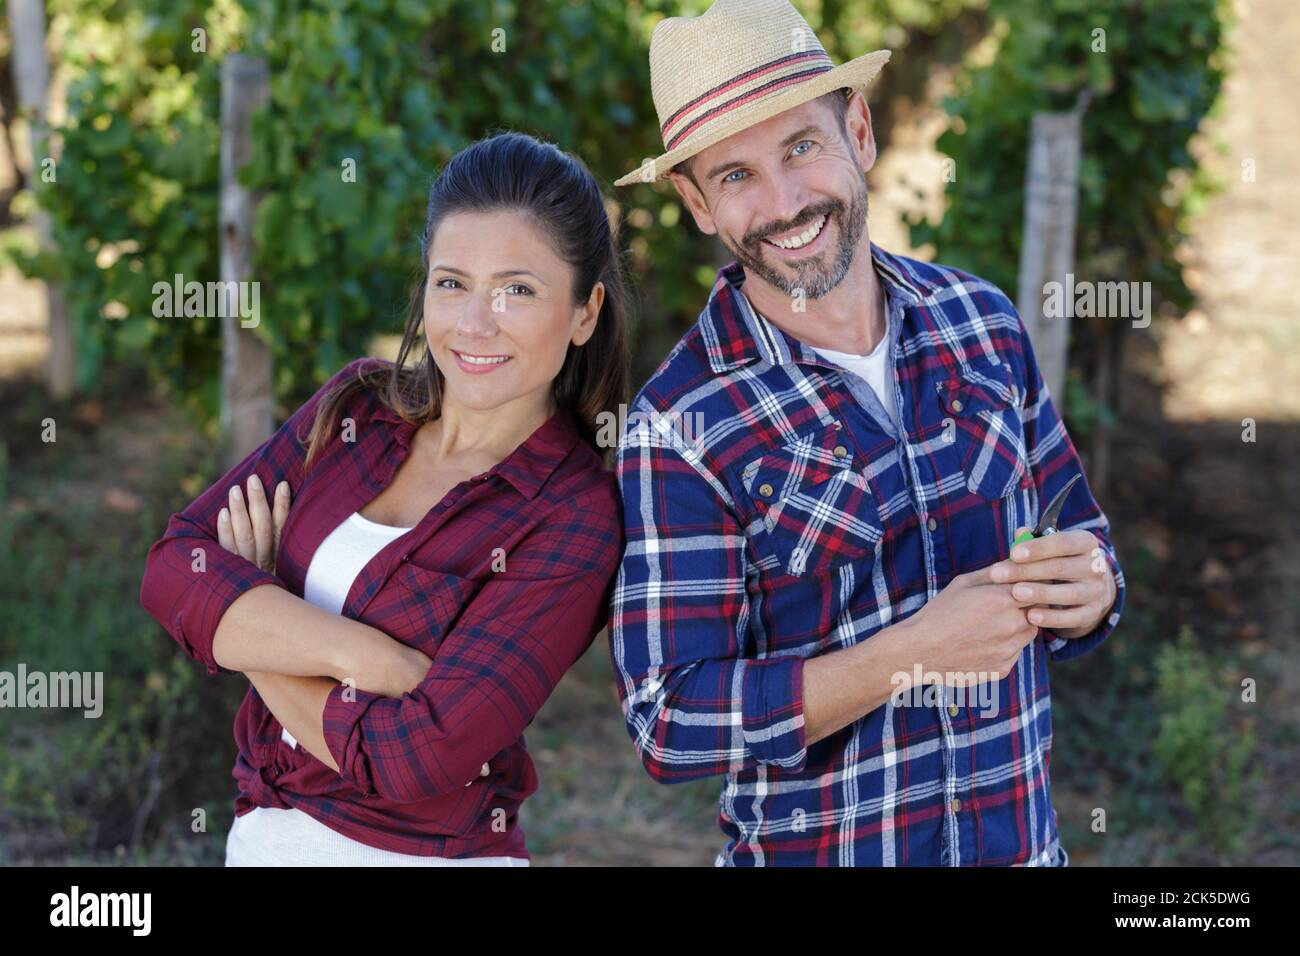 vineyard female and male staff looking at camera Stock Photo